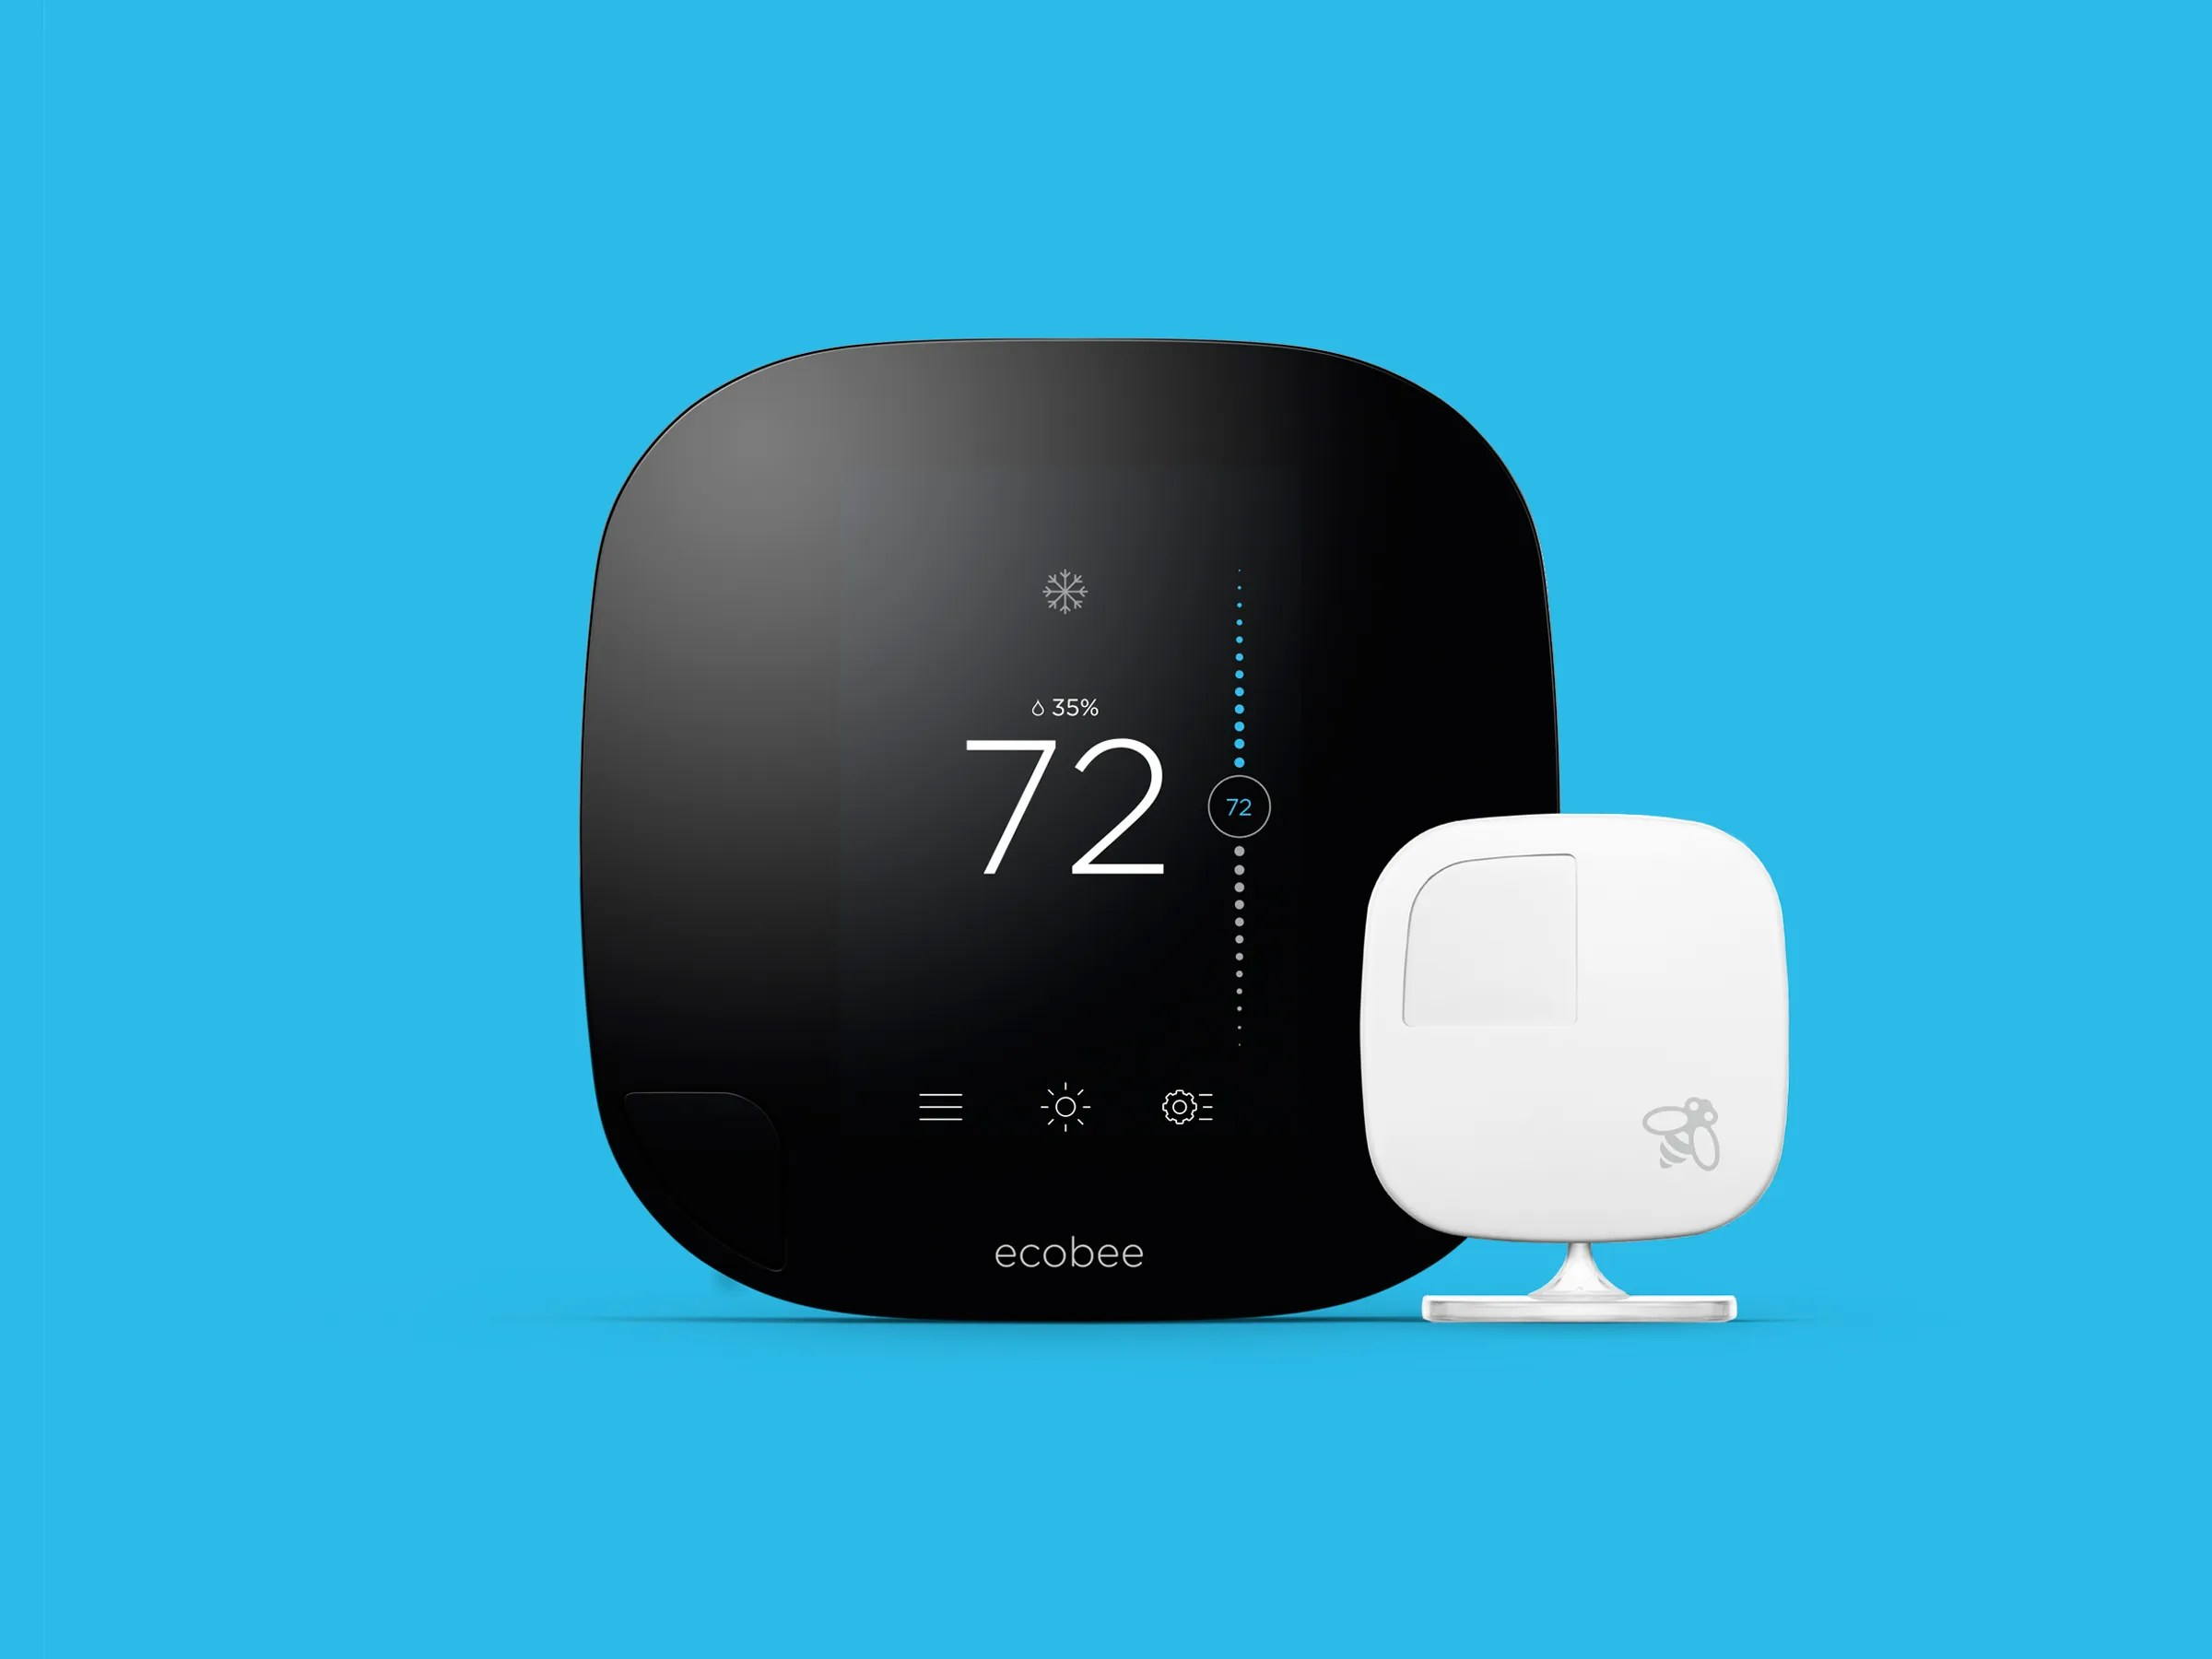 Ecobee Sensor Weekend Tech Deals Breville Ecobee Ecovacs Snes Classic Wired